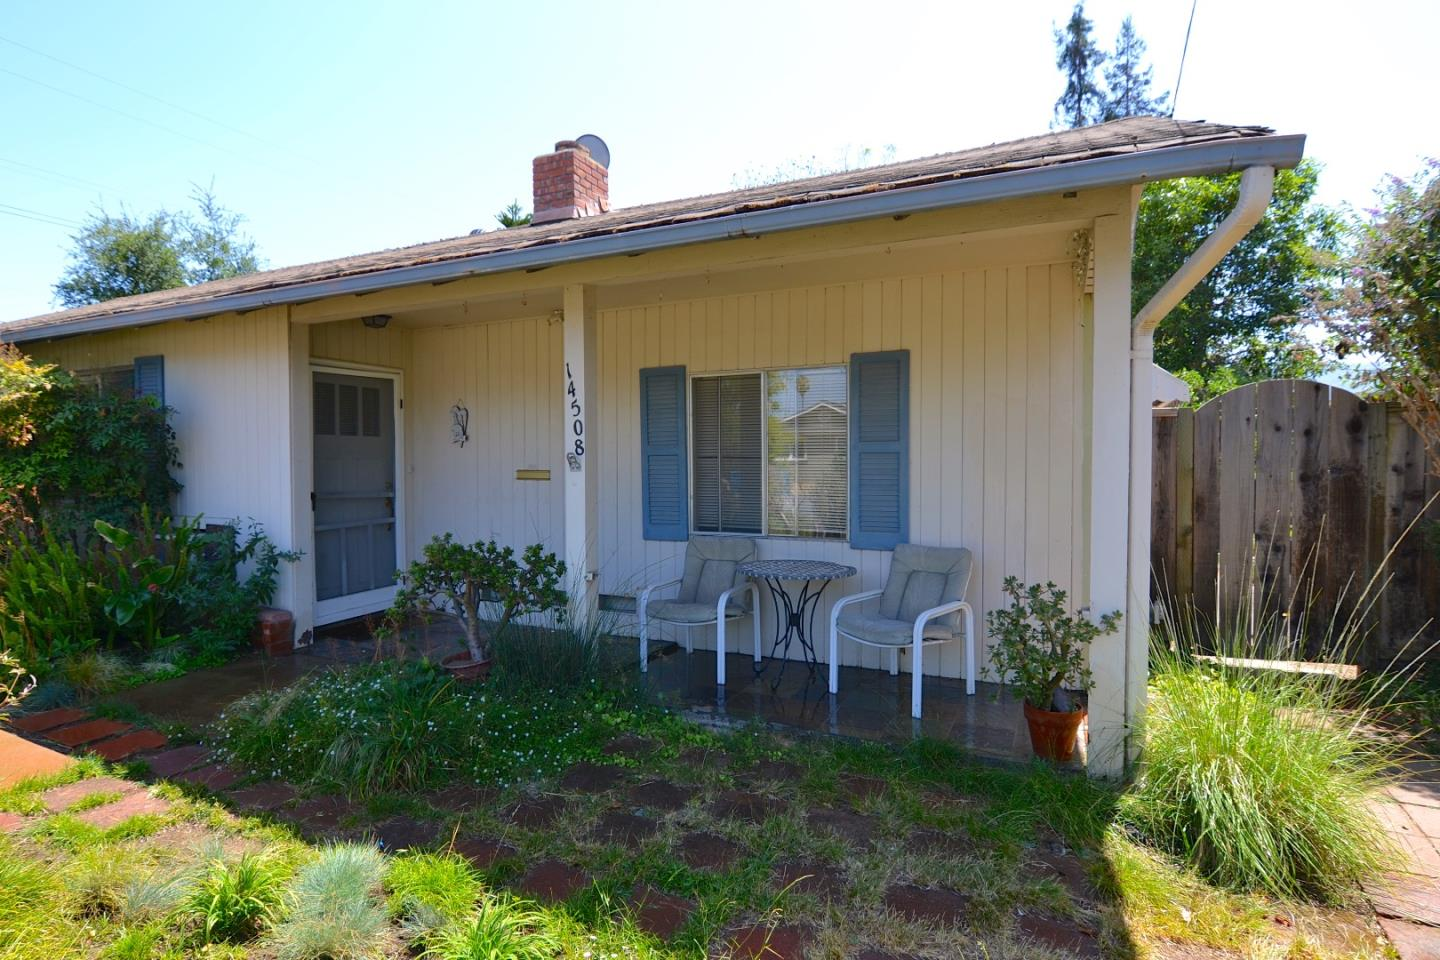 14508 Nelson Way, SAN JOSE, CA 95124